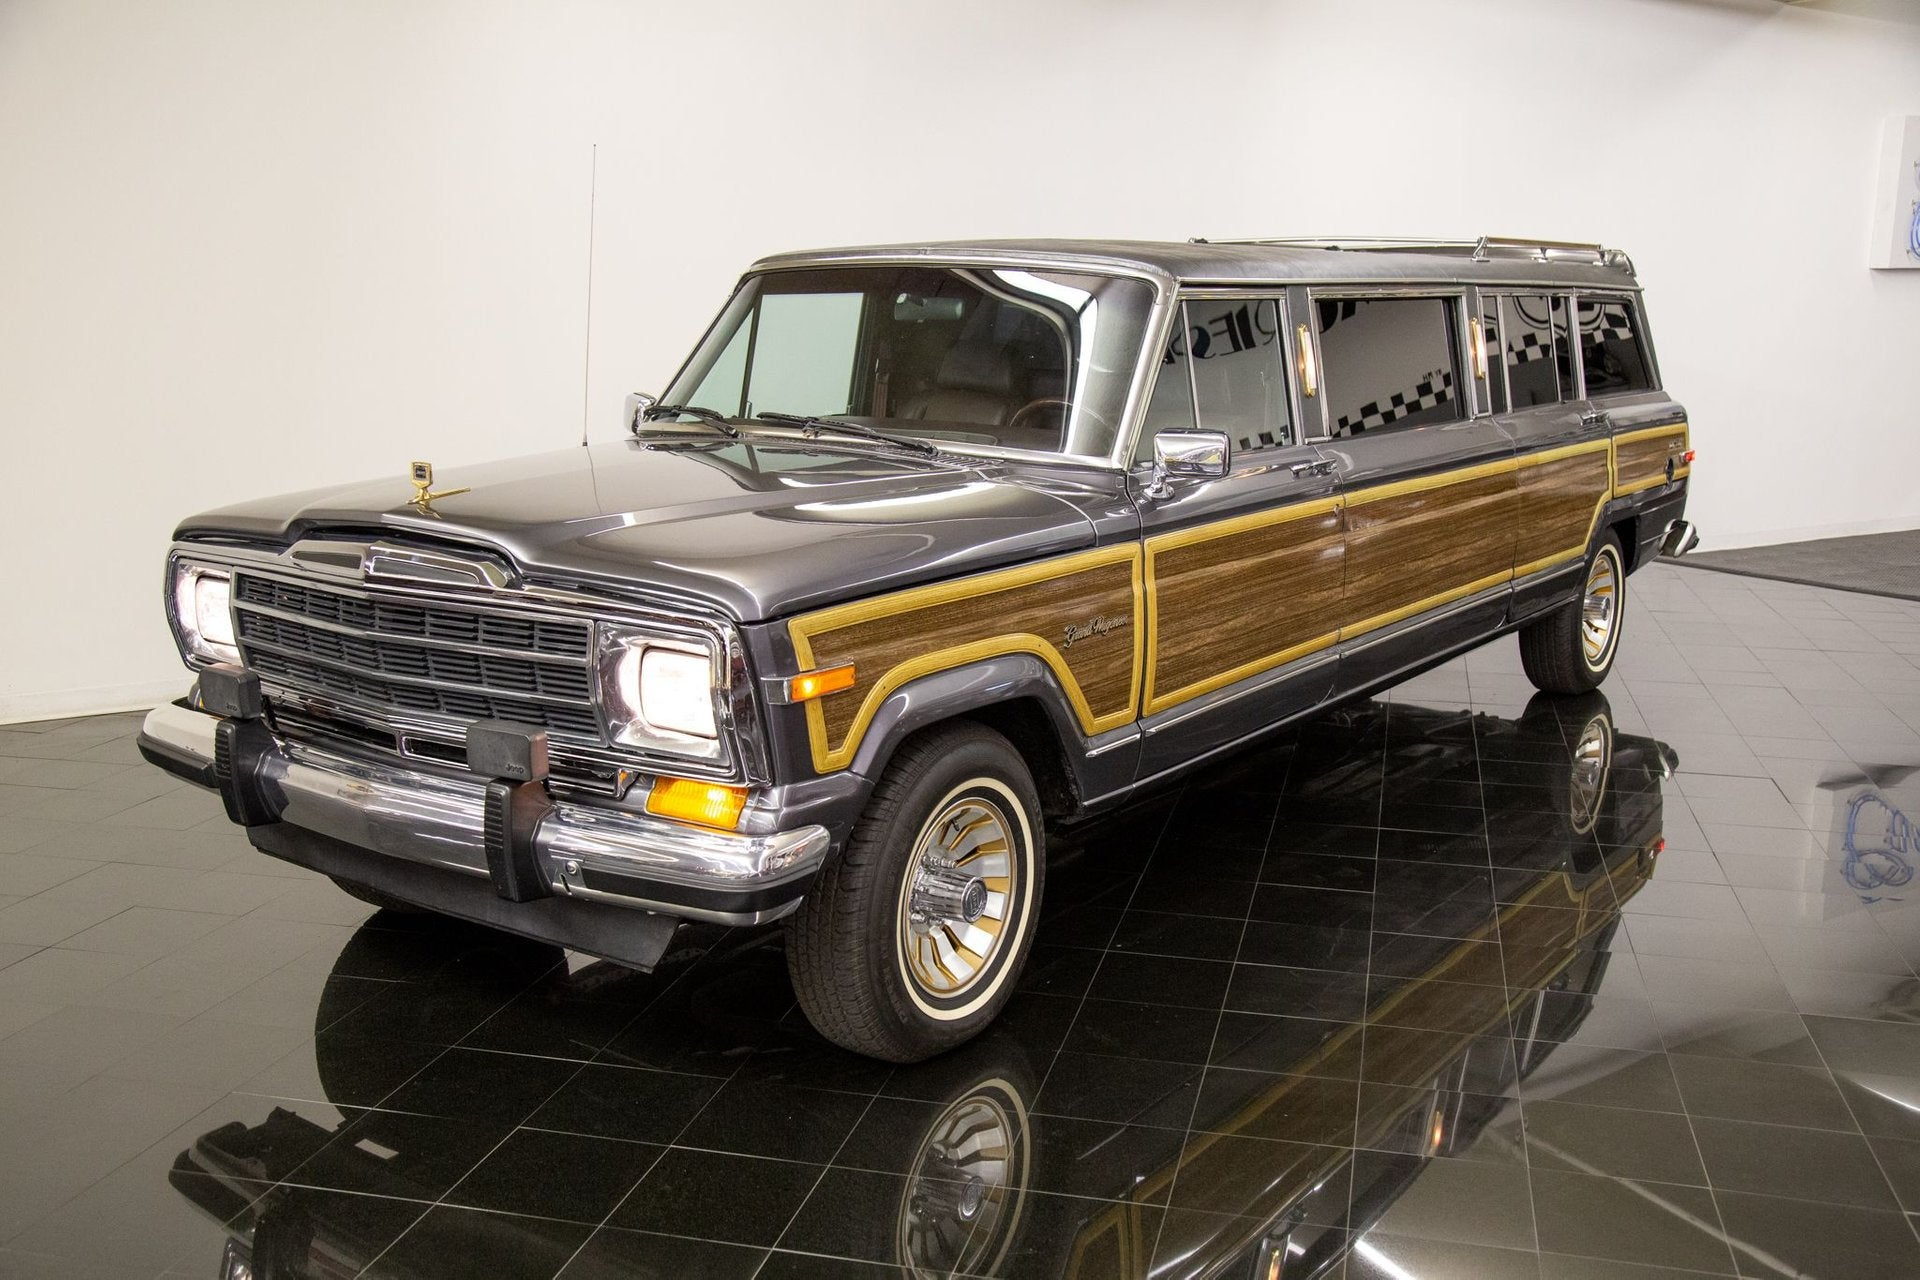 for sale restored 1988 grand wagoneer limo offers 22 feet of wood grain glory for sale restored 1988 grand wagoneer